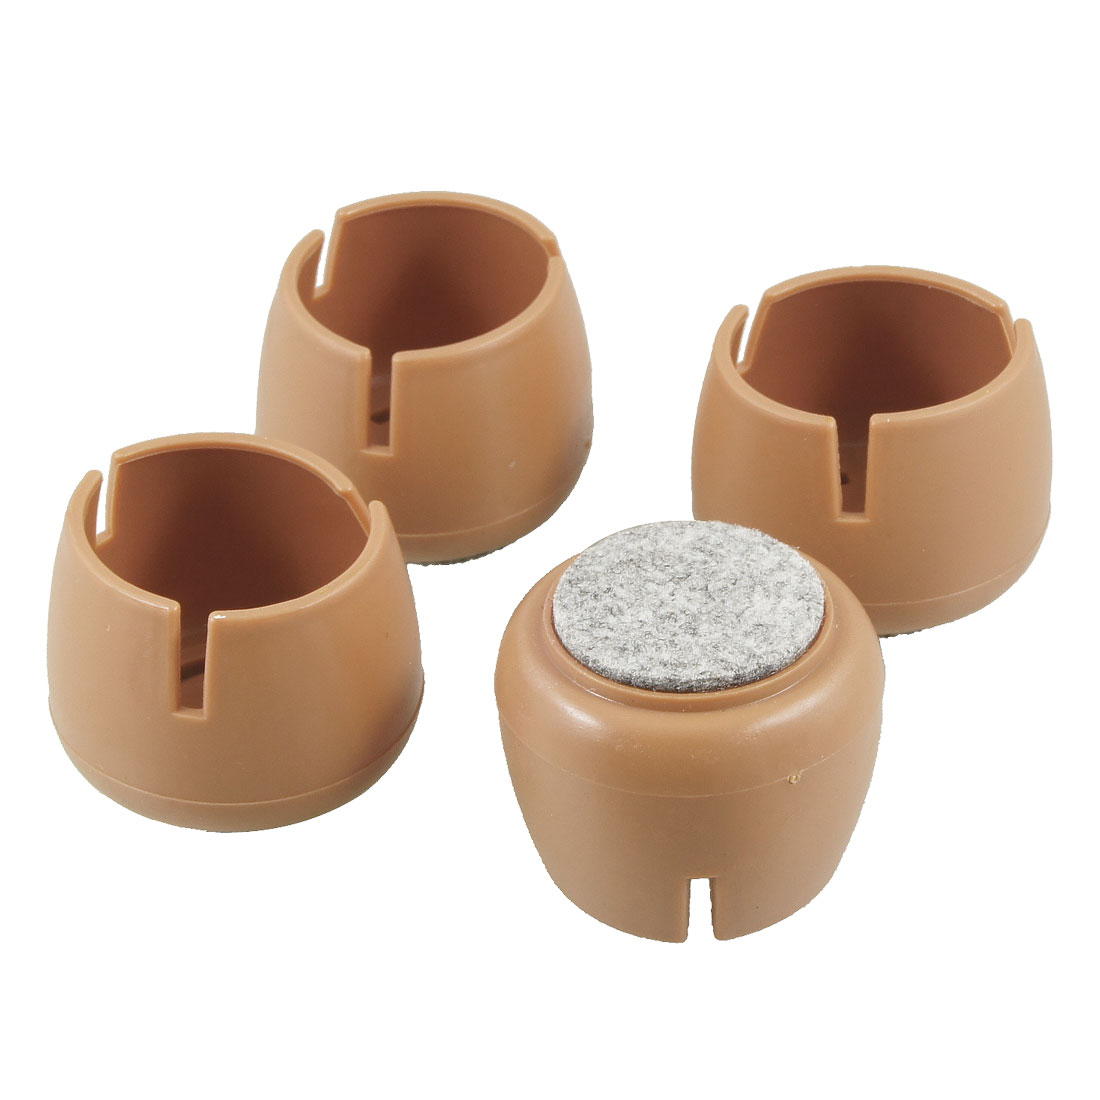 4 Pcs 40mm Dia Brown Wool Felt Base Chair Table Foot Soft Cover Guard